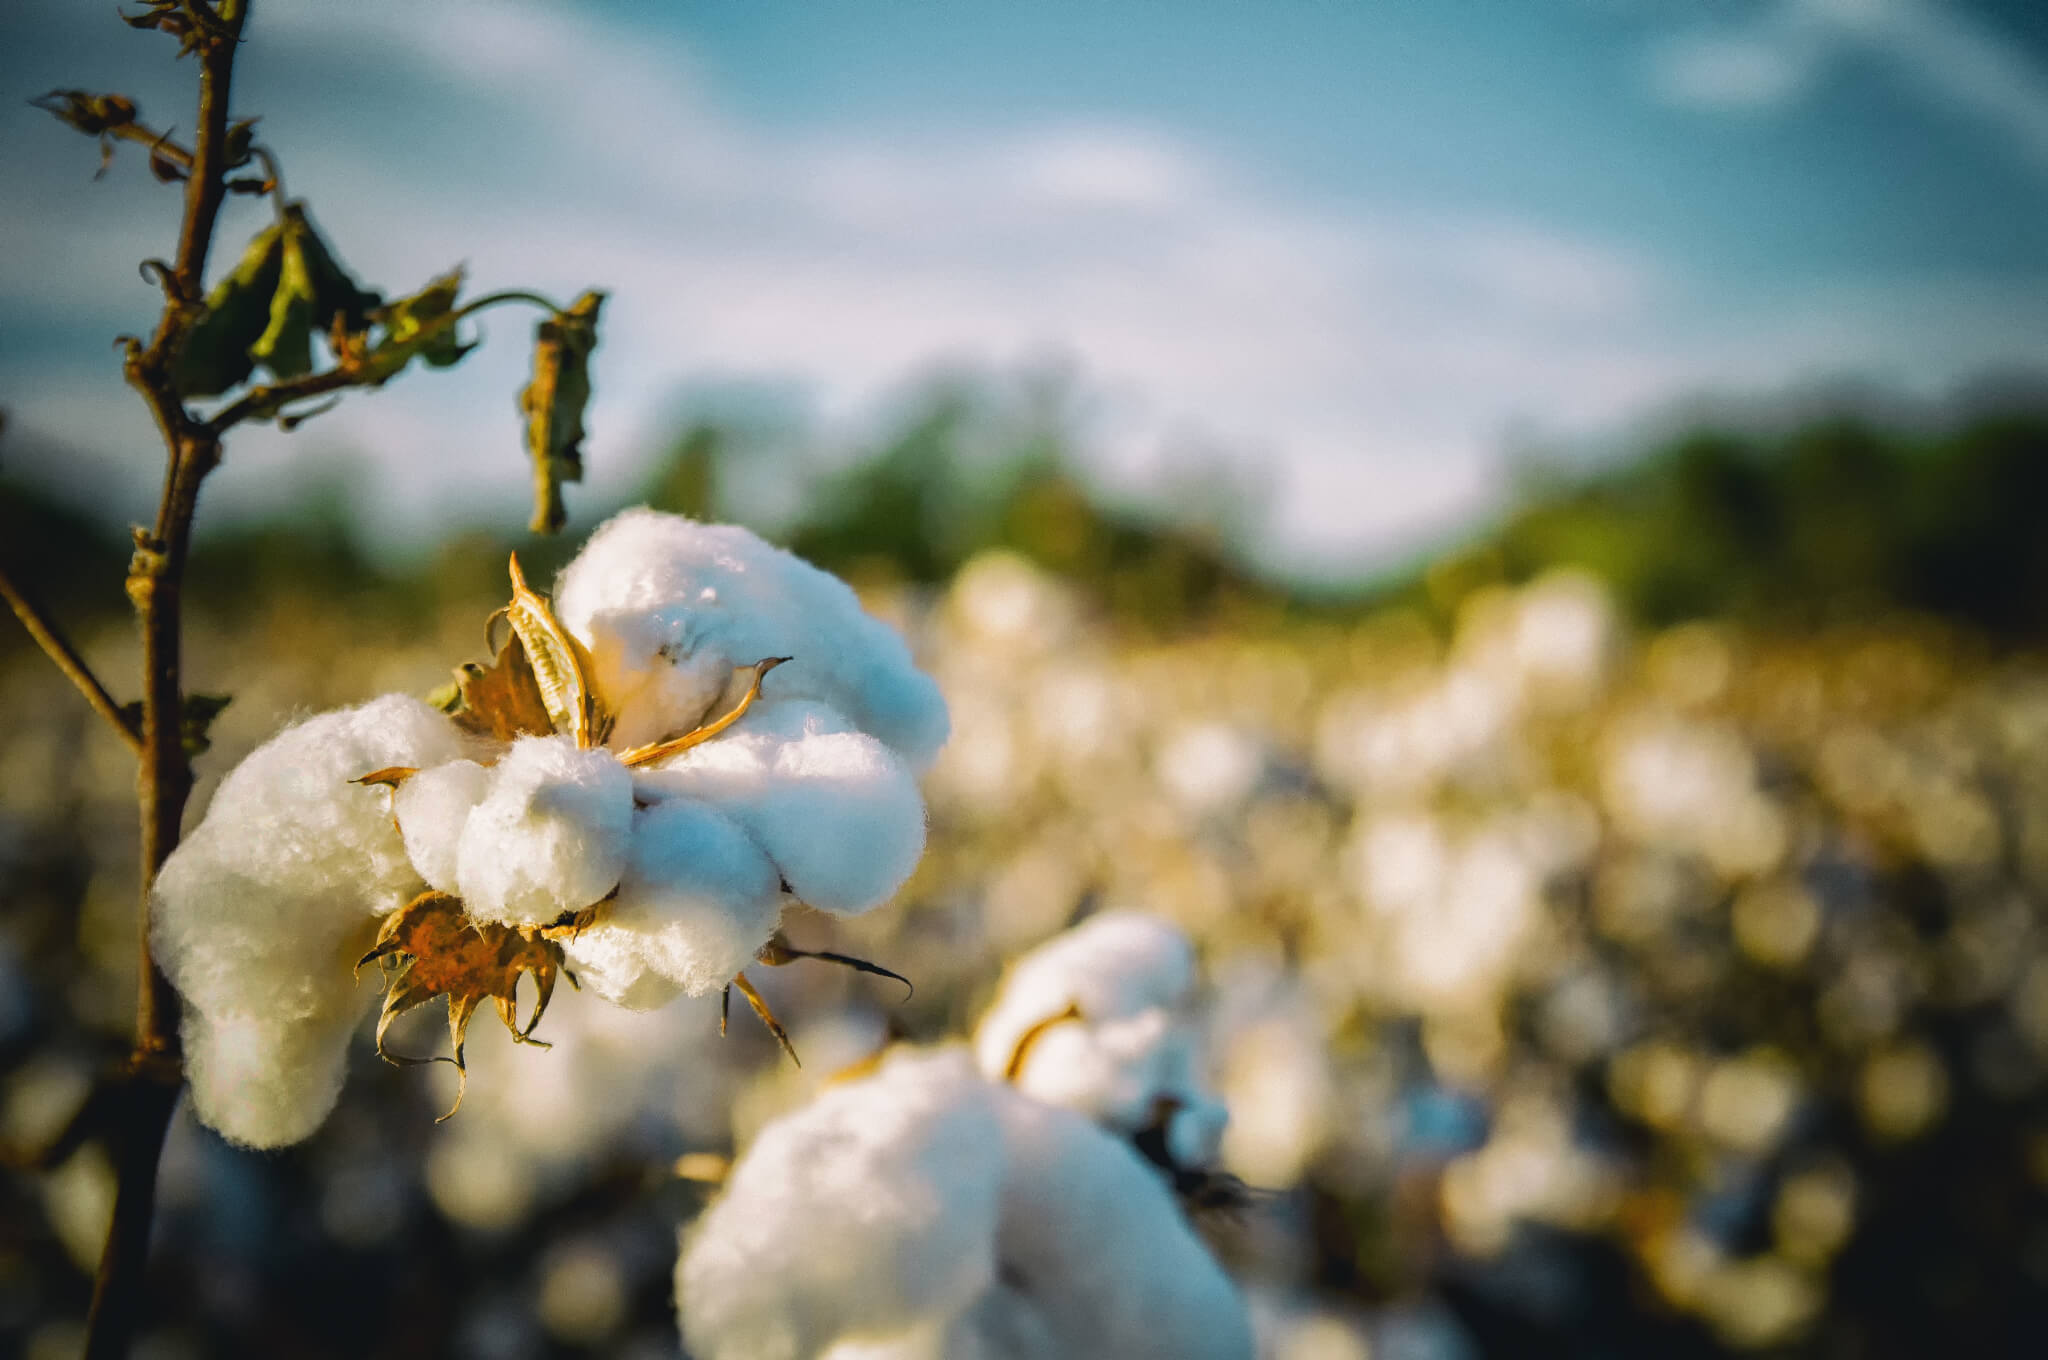 Paraquat can be used on cotton plants.